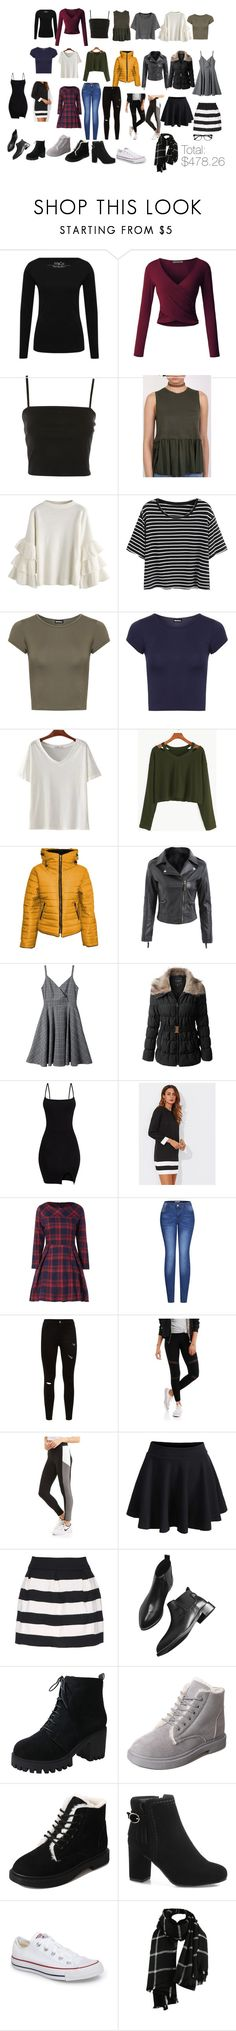 """Capsule Wardrobe"" by ibratley on Polyvore featuring M&Co, LE3NO, Topshop, Pilot, WearAll, Malaika, 2LUV, Converse and EyeBuyDirect.com"